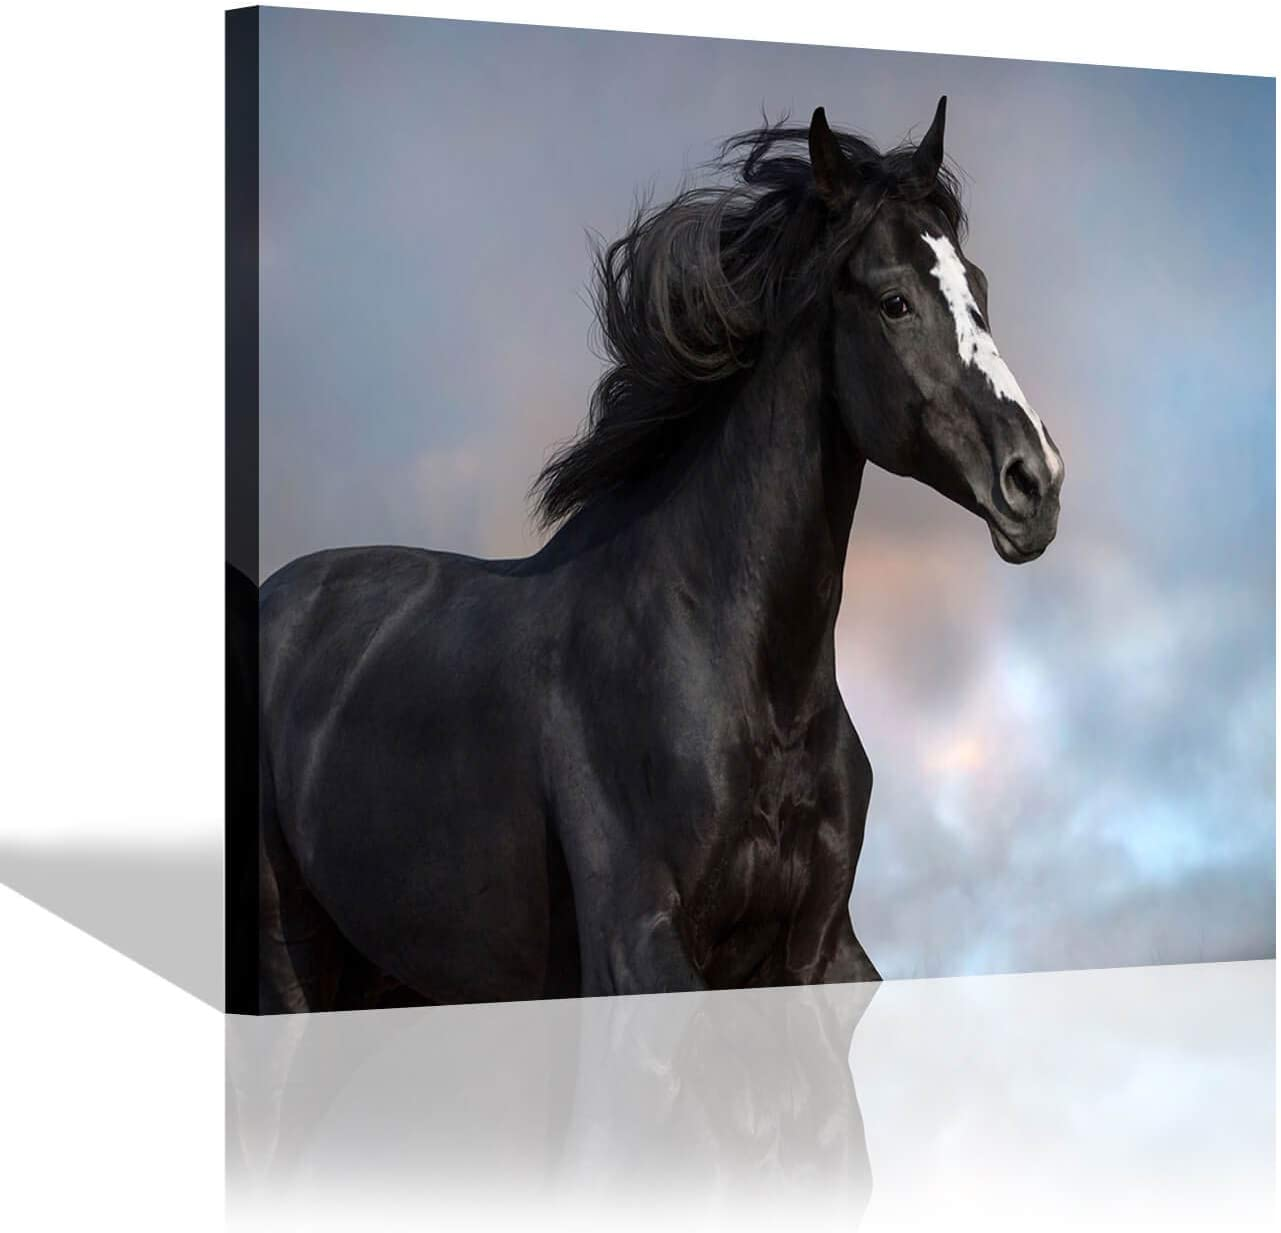 Black Horse Picture Canvas Art: Black Horse Painting Print Artwork Wall Art for Office ( 24'' x 18'' x 1 Panel )